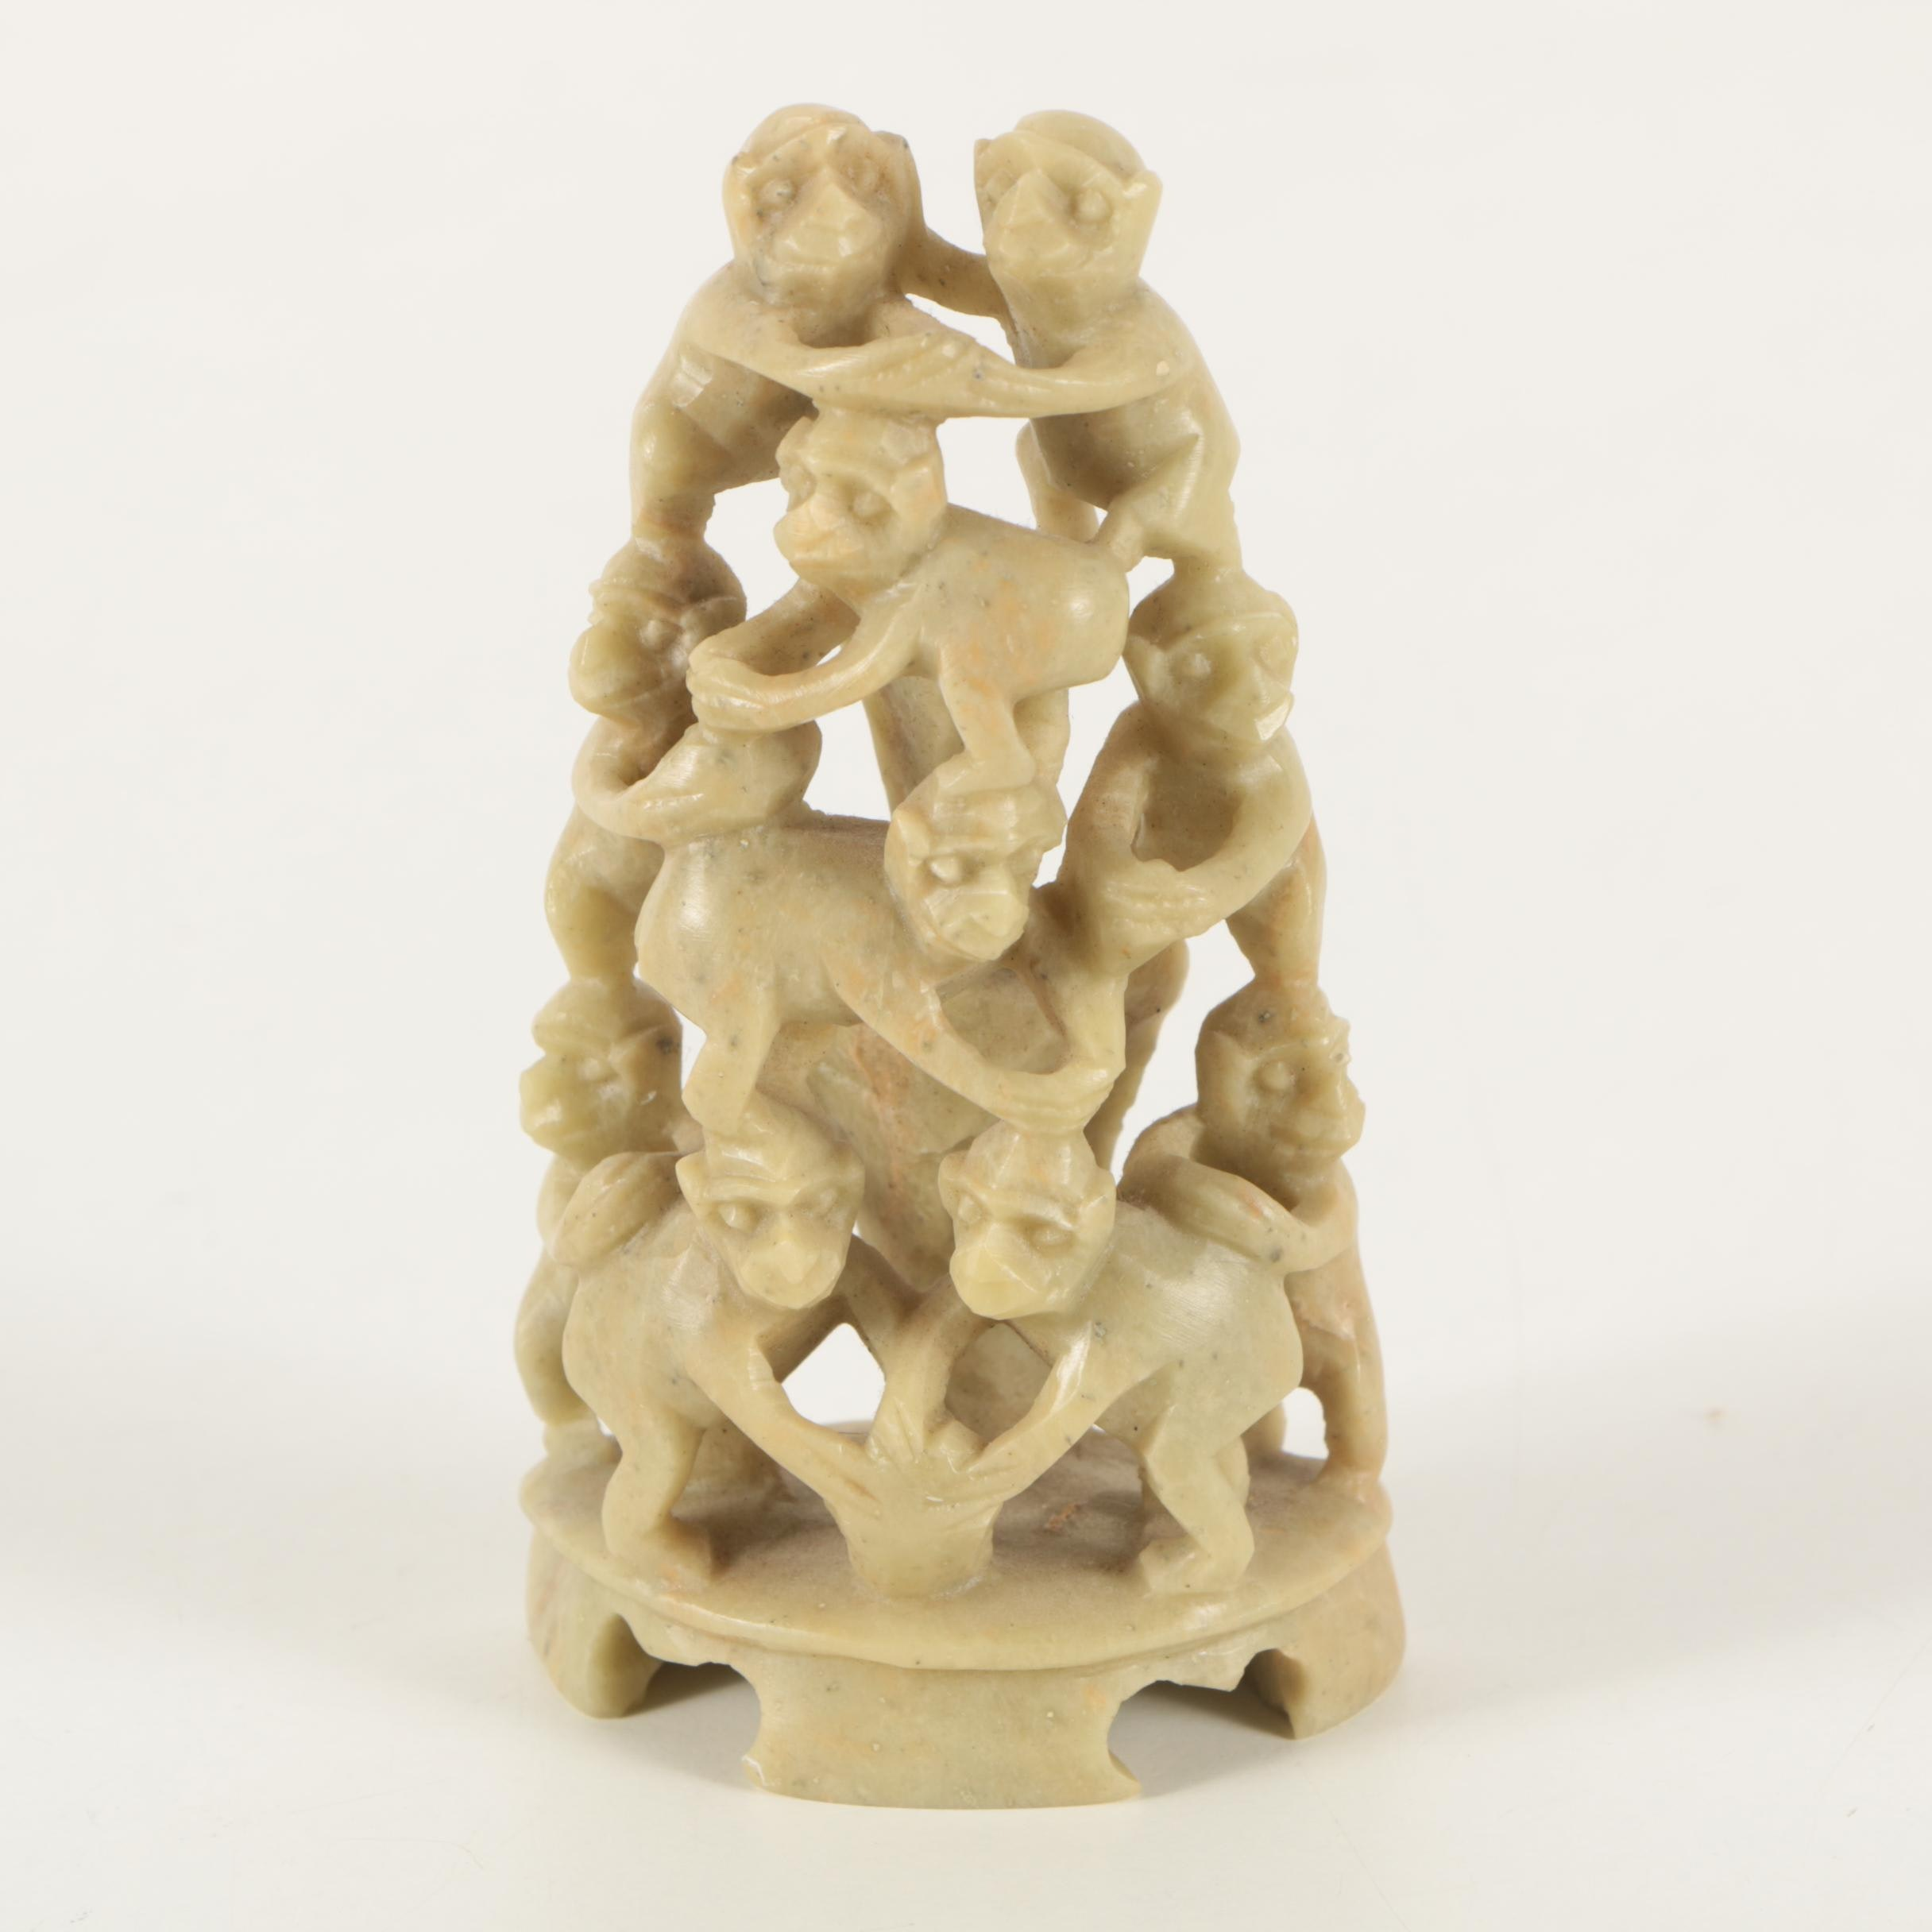 Chinese Carved Soapstone Figurine of Ten Monkeys